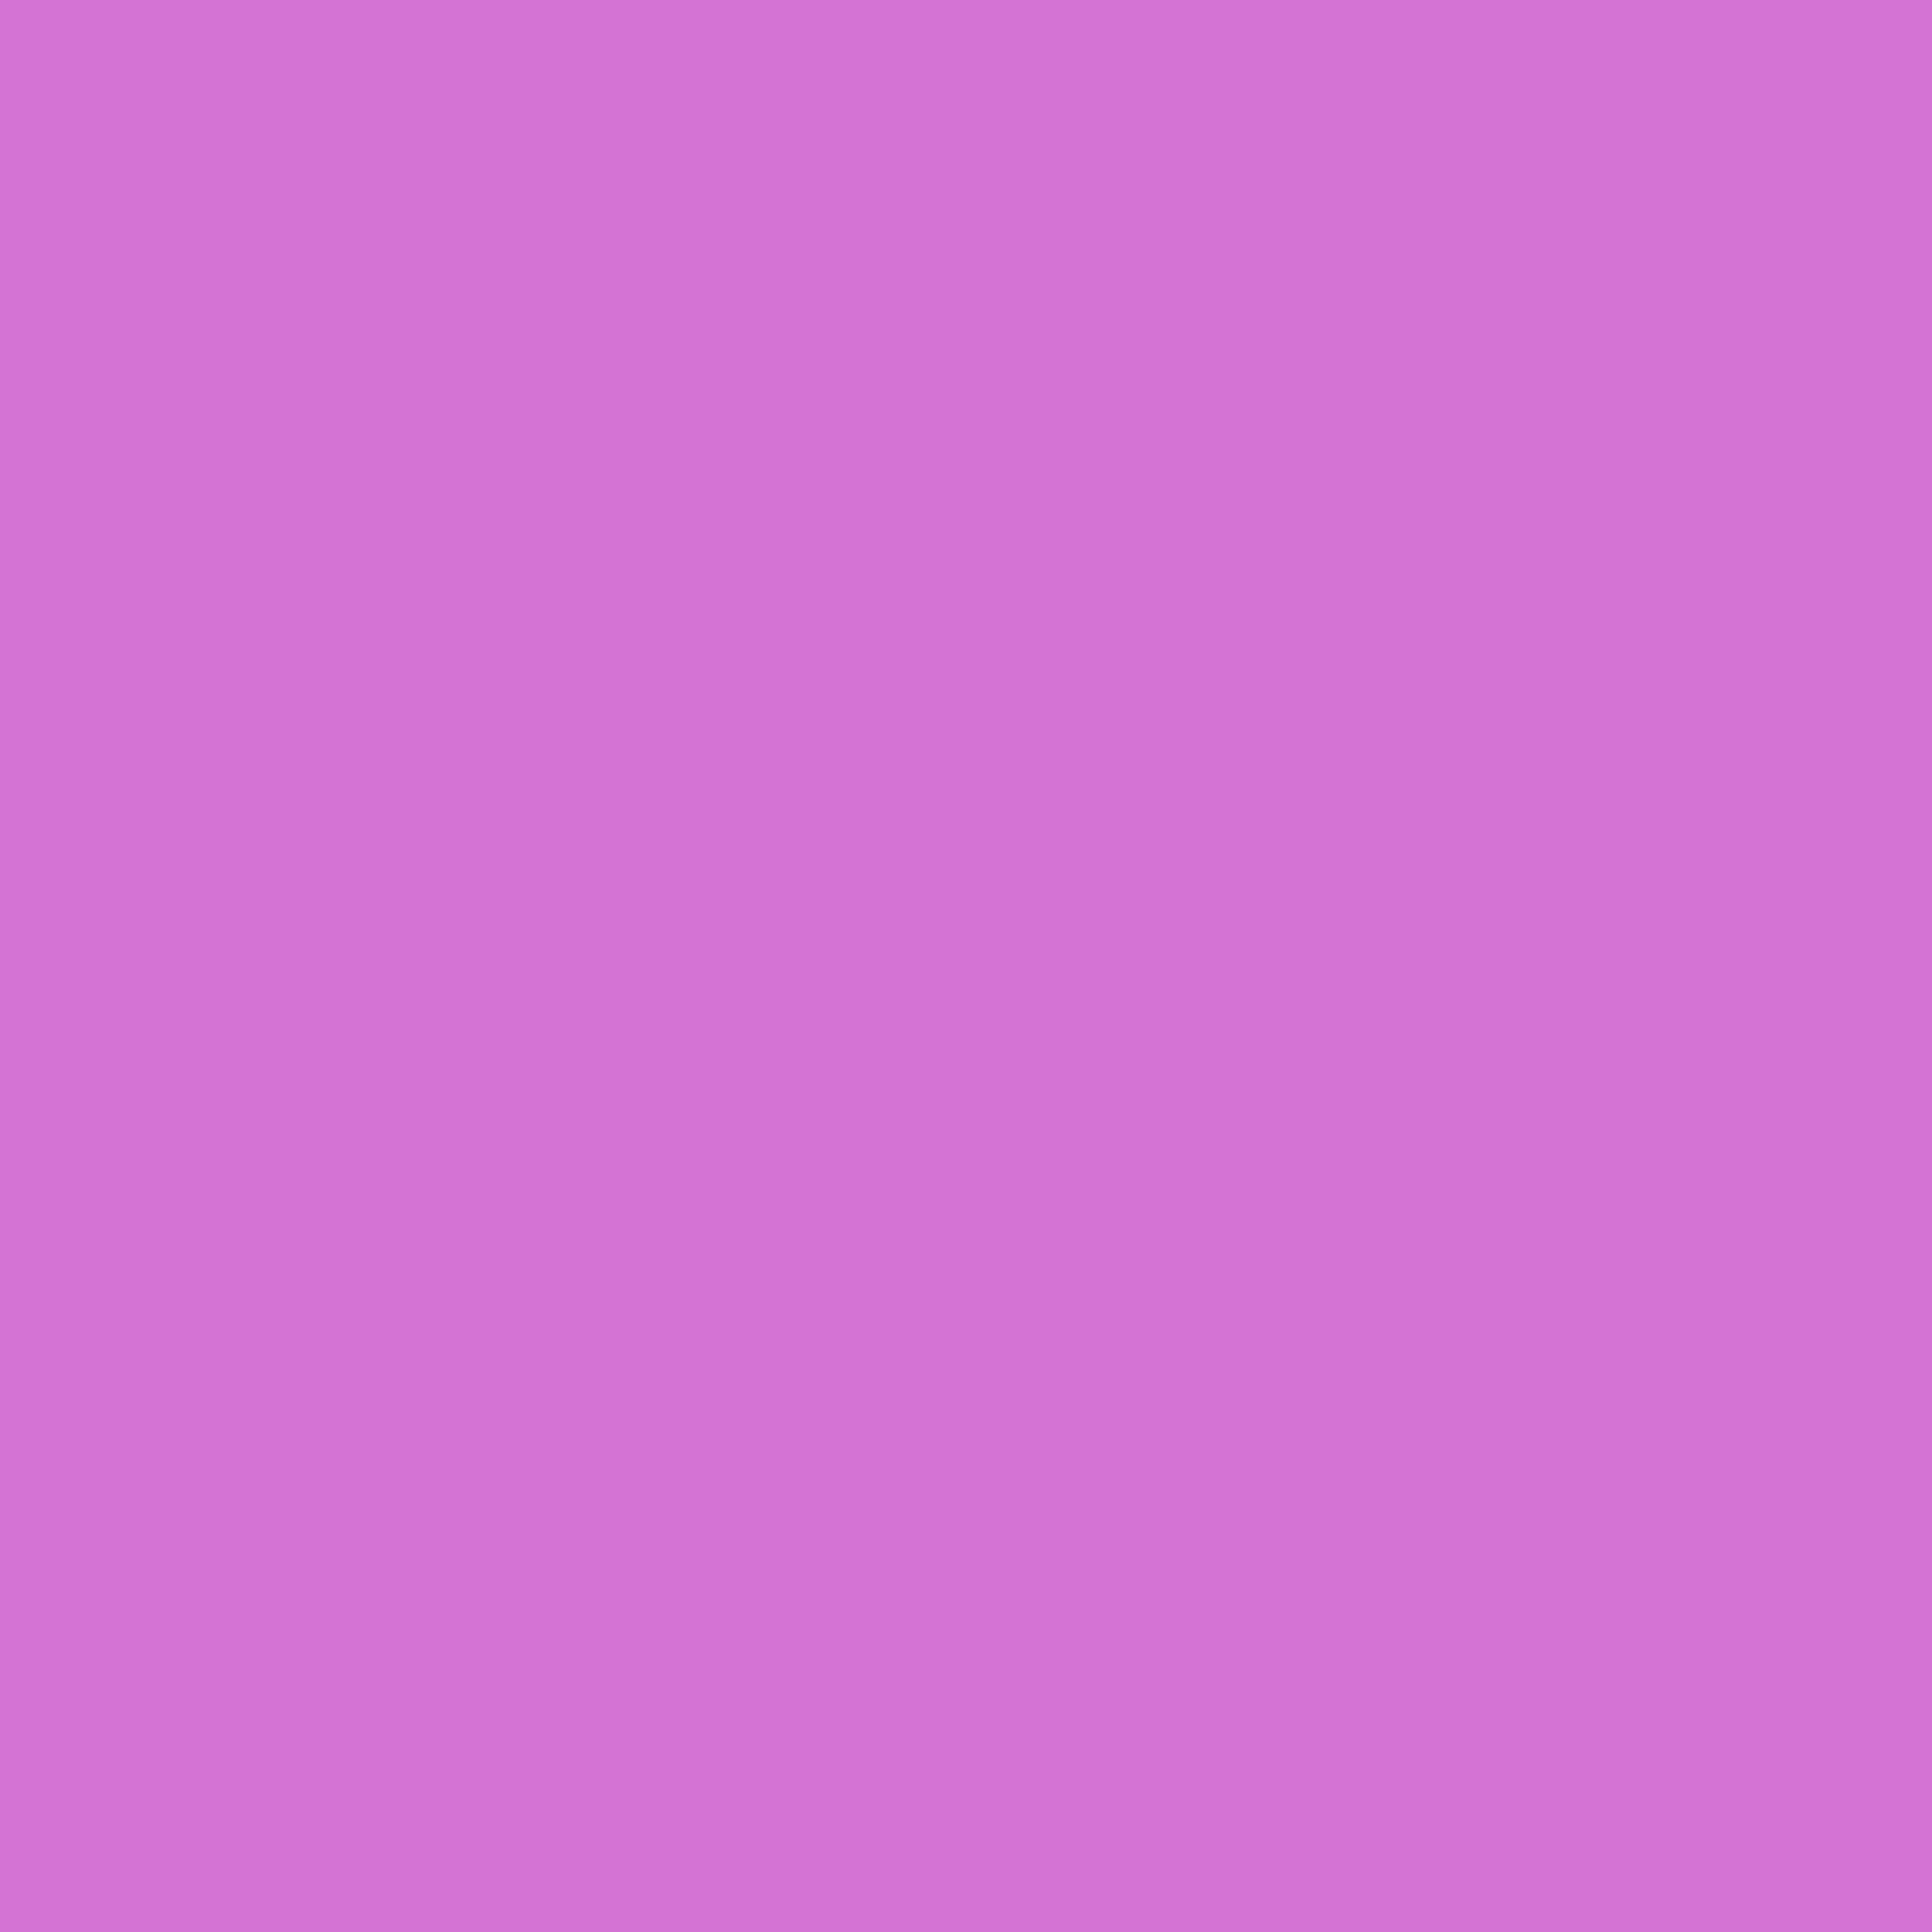 3600x3600 French Mauve Solid Color Background